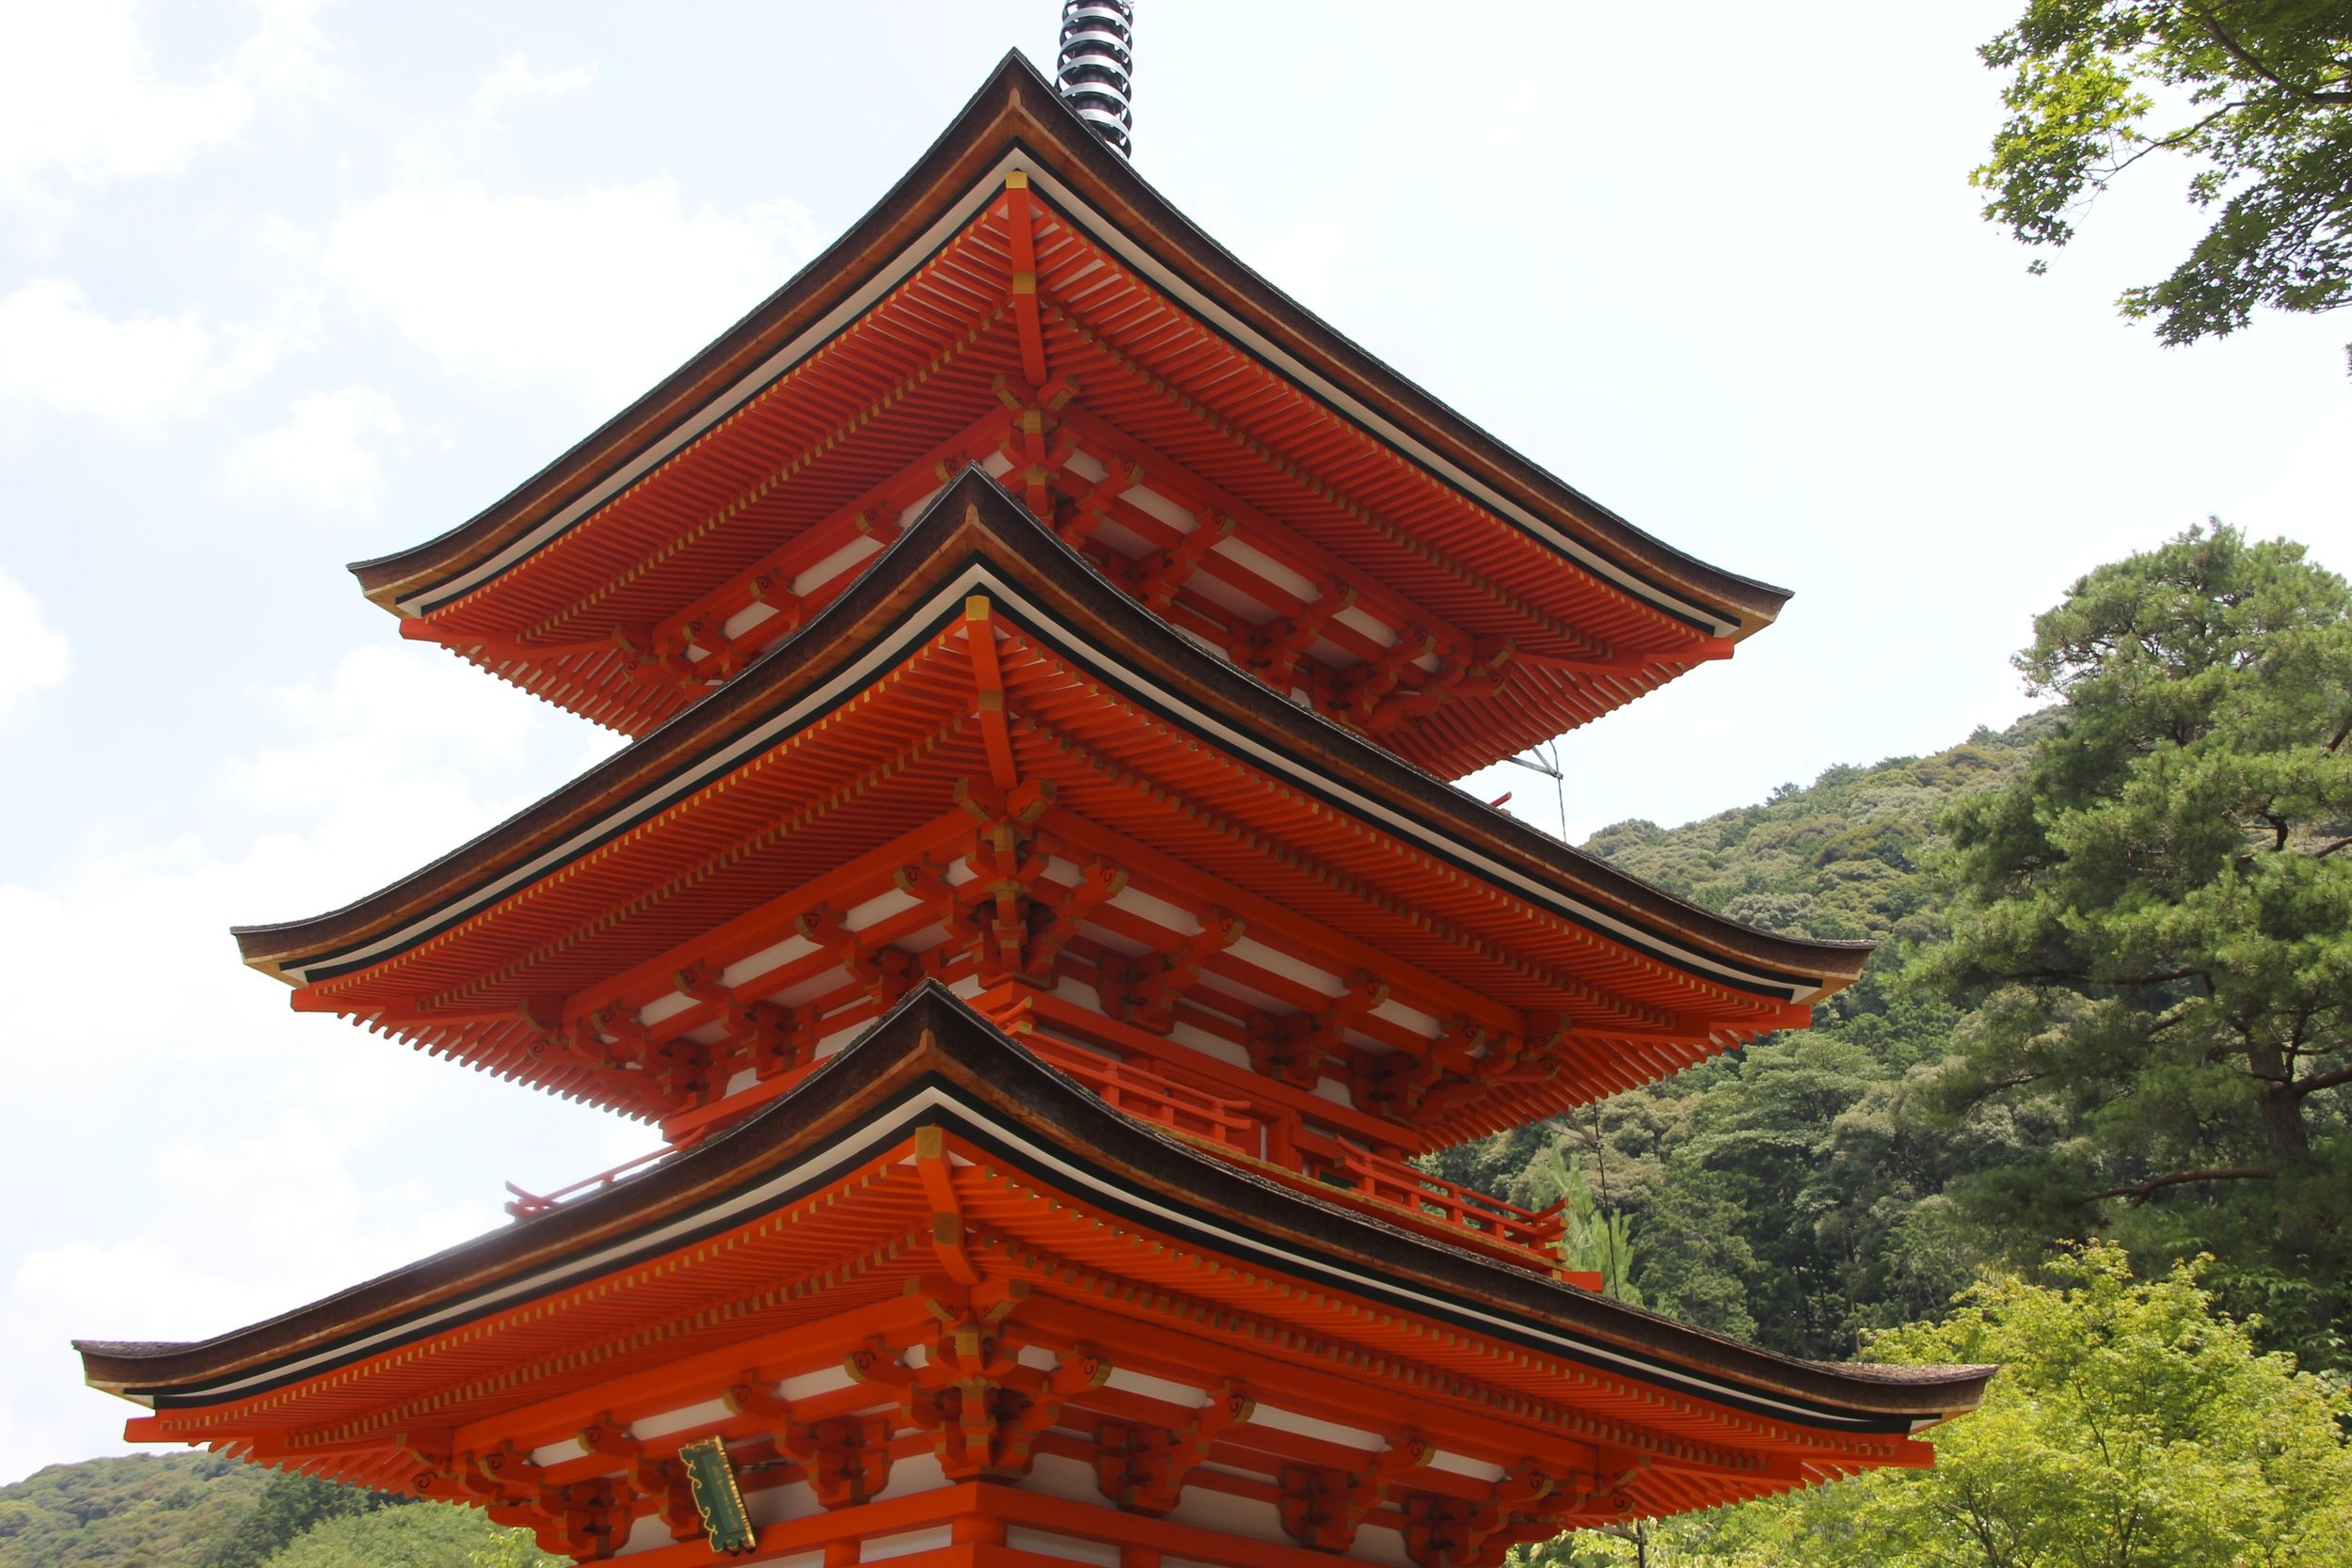 The three story pagoda at the Kiyomizu-dera,  an independent Buddhist temple in eastern Kyoto.  The temple was founded in 778.  It takes its name from the waterfall within the complex, which runs off the nearby hills.  Kiyomizu  means  clear water , or  pure water.